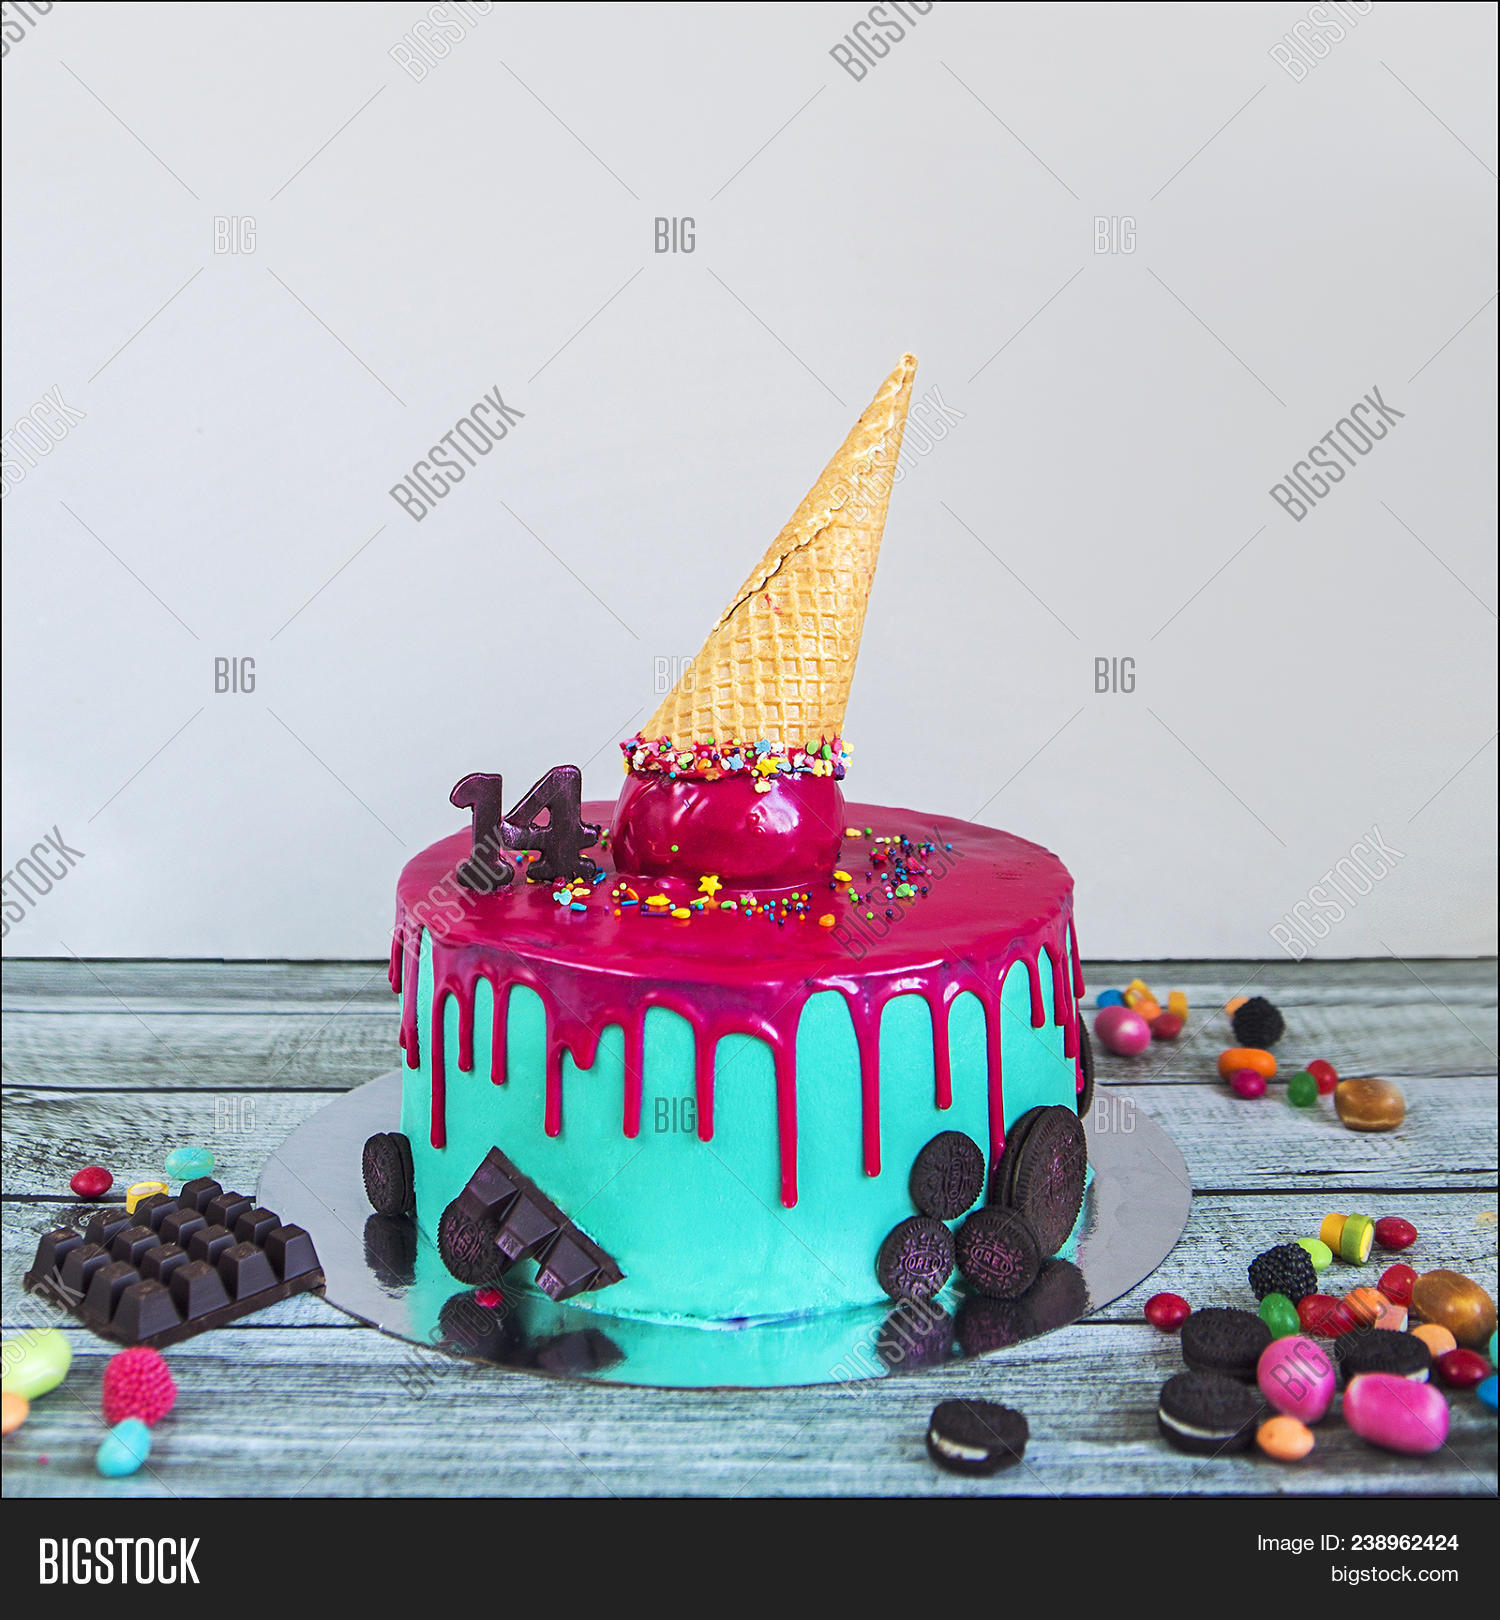 Birthday Cake With Pink Turquoise Coated Ice Cream Horn And Candies On A Wooden Table